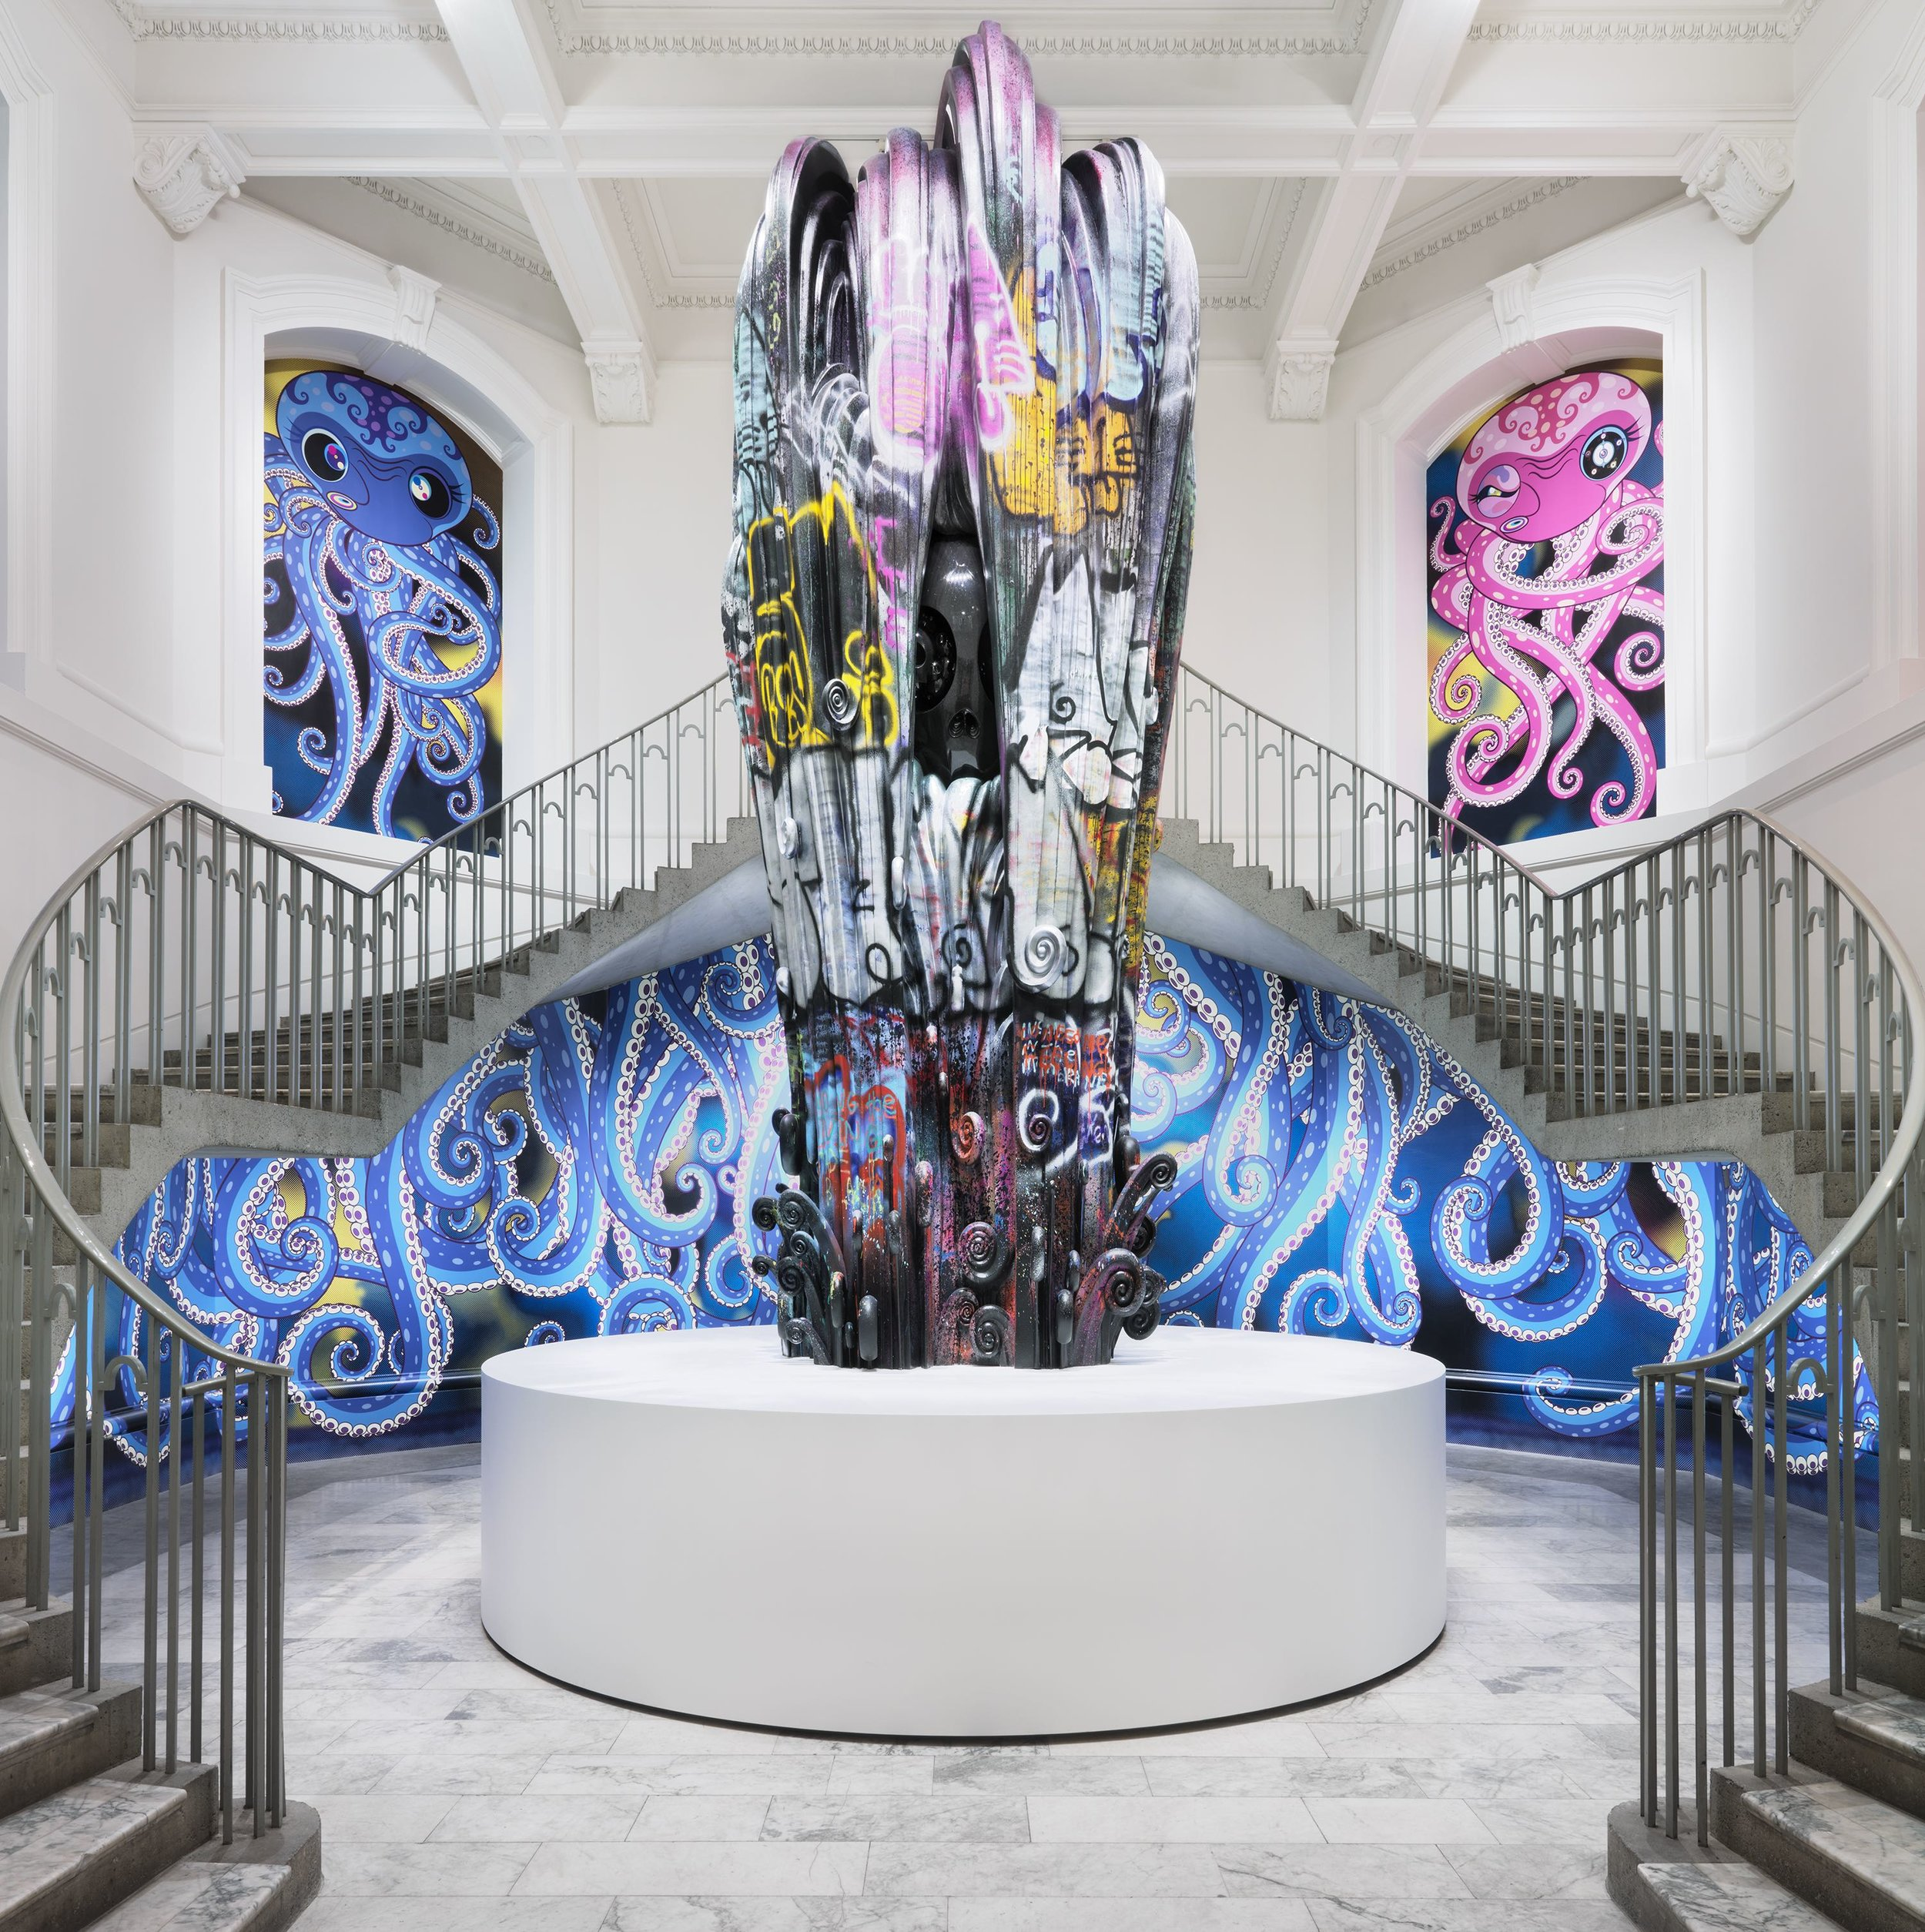 Installation view of   Takashi Murakami: The Octopus Eats Its Own Leg  , exhibition at the Vancouver Art Gallery, February 3 to May 6, 2018, with  Chakras Open and I Drown Under the Waterfall of Life , 2017, in the rotunda, © Takashi Murakami/Kaikai Kiki Co., Ltd. All Rights Reserved, Photo: Rachel Topham, Vancouver Art Gallery